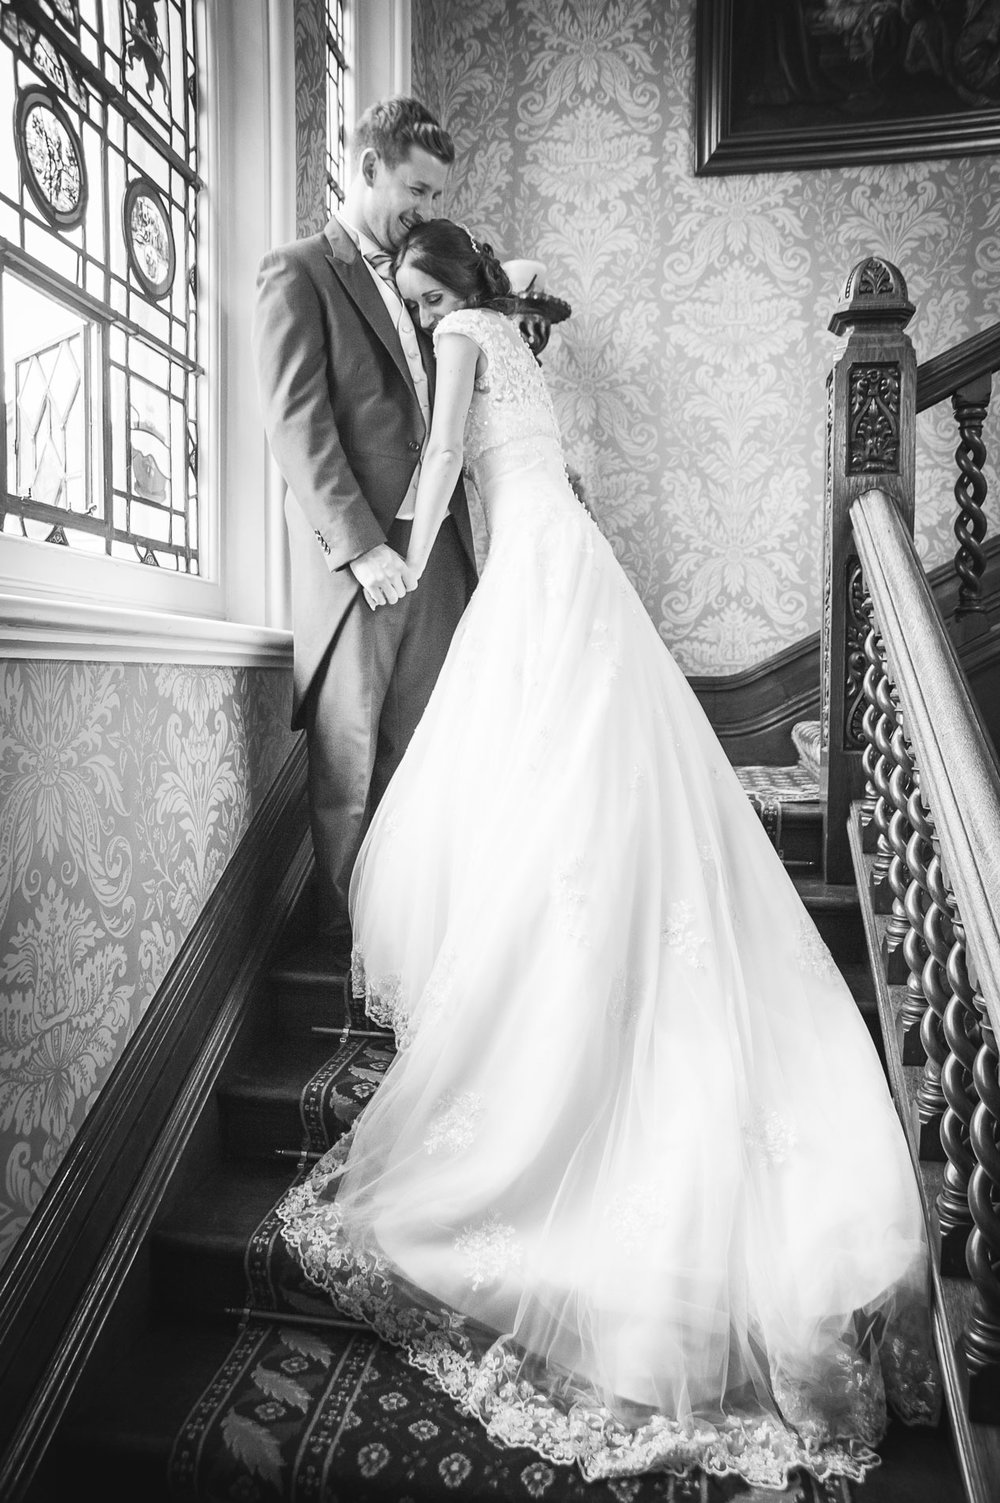 Kilworth-weddings-_38.jpg